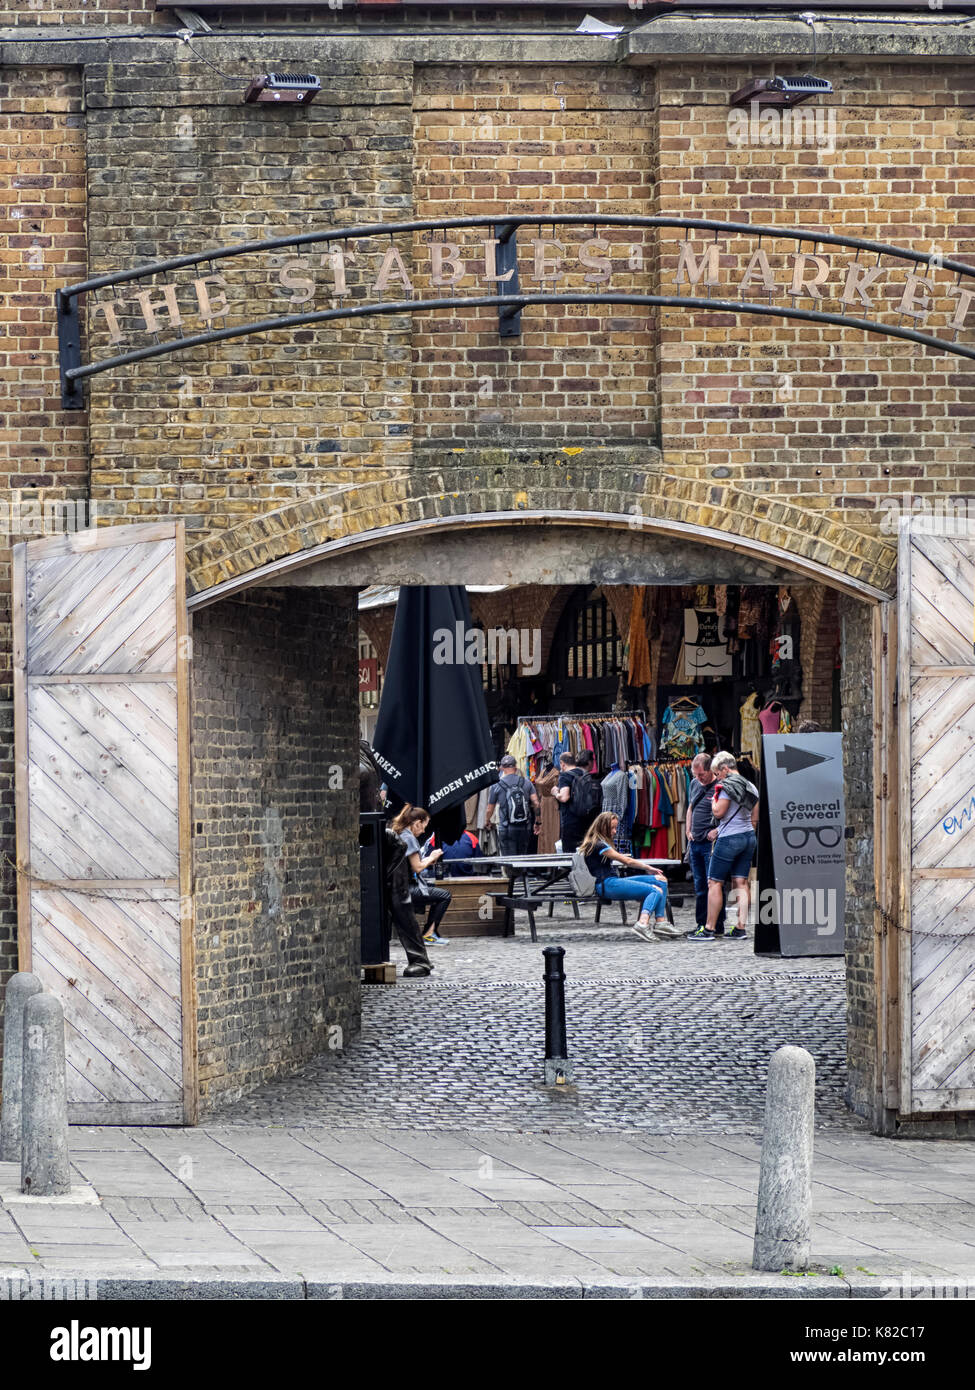 CAMDEN MARKET, LONDON:  Arched entrance to the Stables market - Stock Image